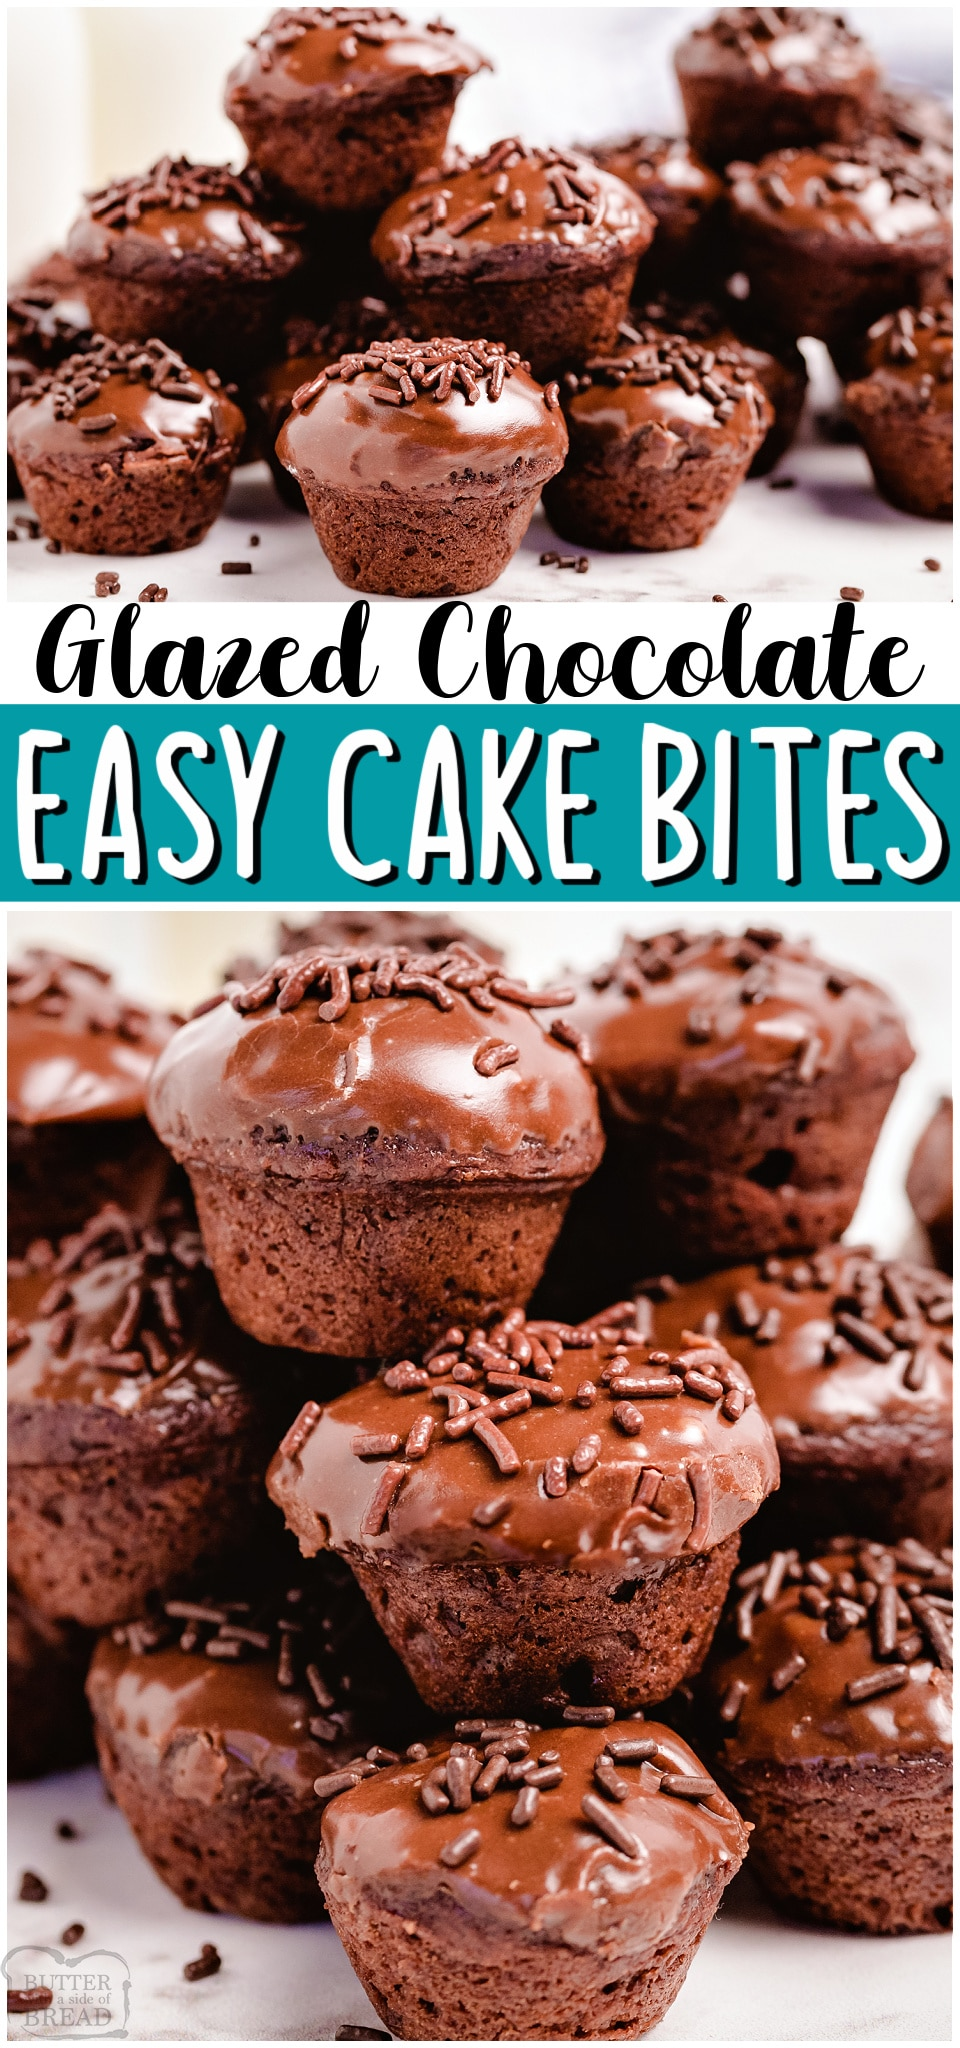 Easy Chocolate Cake Bites are simple, bite-sized chocolate cupcakes that are so easy to make! Super cute & beyond tasty, these mini chocolate cupcakes are always a hit. #chocolate #cake #cupcakes #cakebites #baking #dessert #easyrecipe from BUTTER WITH A SIDE OF BREAD